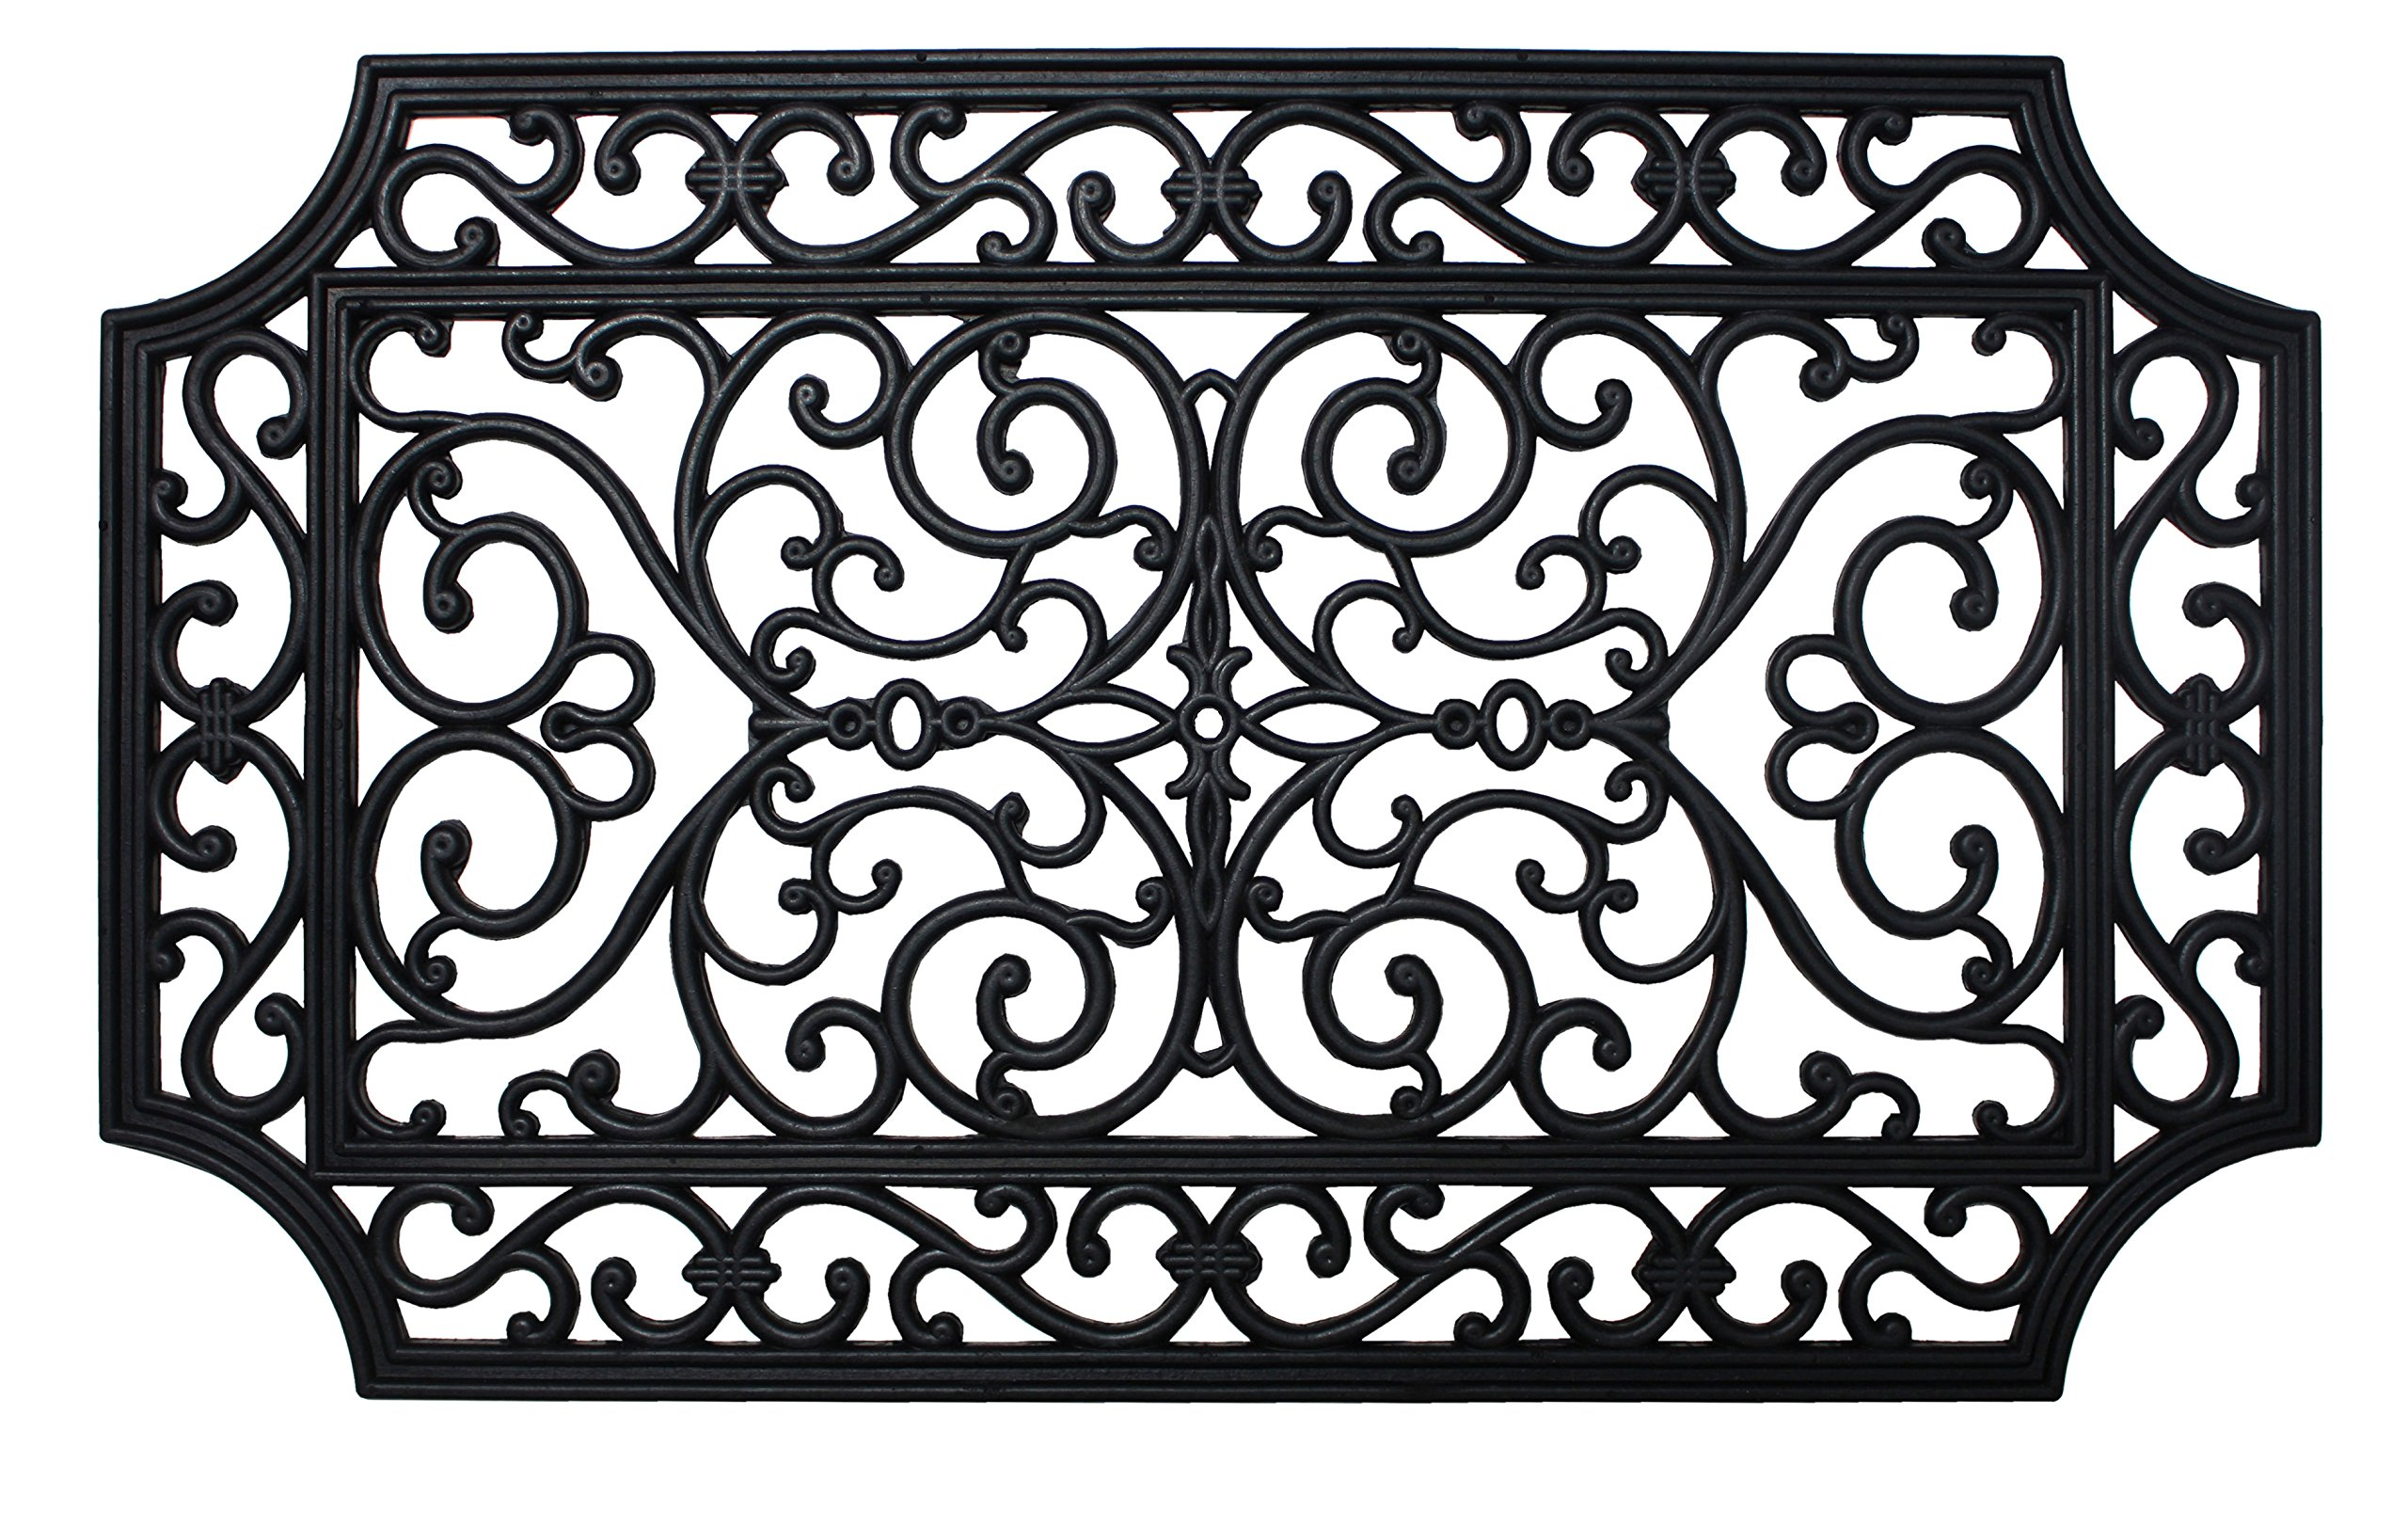 J&M Home Fashions Heavy Duty Natural Rubber Outdoor Doormat, 18x30, Entry Way Shoes Scraper Patio Rug Dirt Debris Mud Trapper Waterproof-French Quarter by J&M Home Fashions